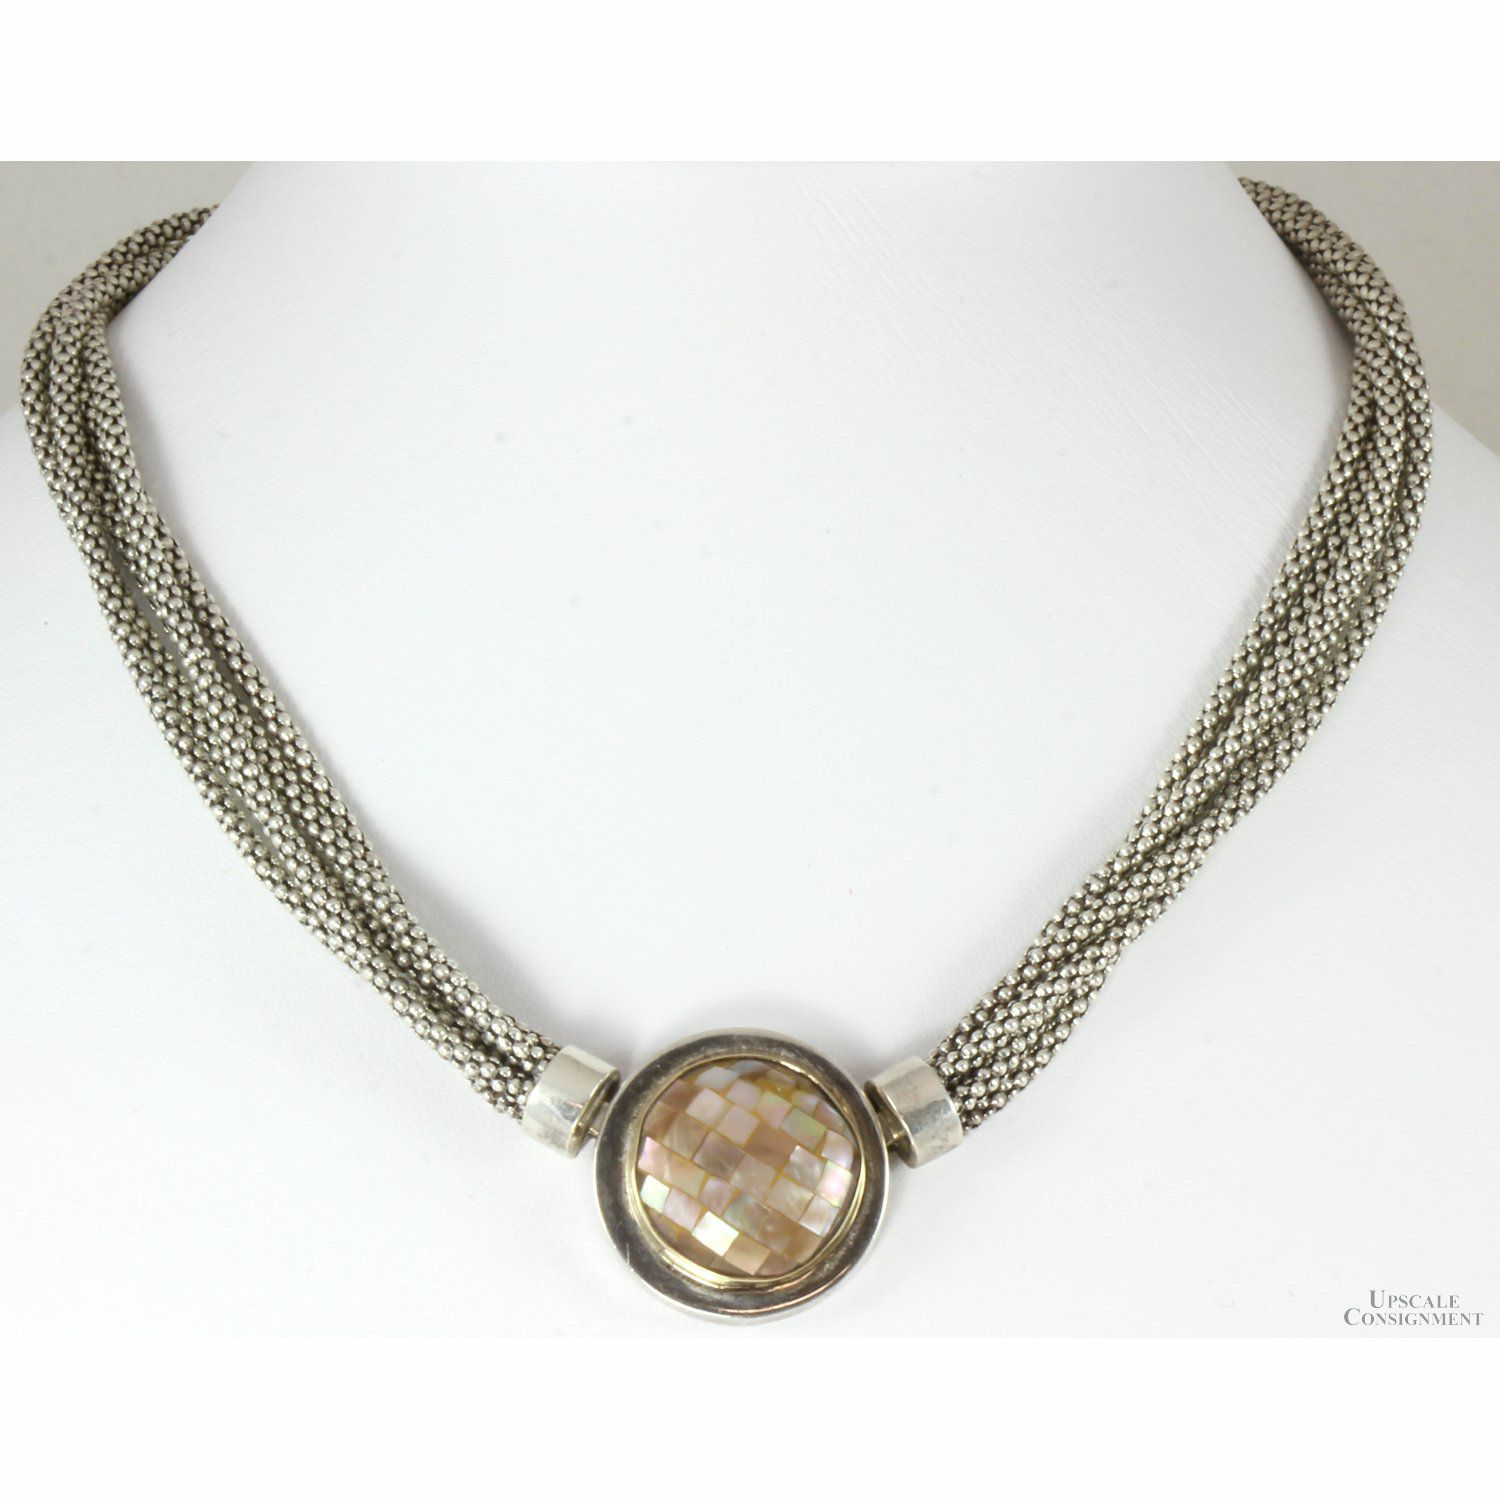 Michael-Dawkins-Sterling-Silver-Mother-of-Pearl-Pendant-Necklace_92810A.jpg